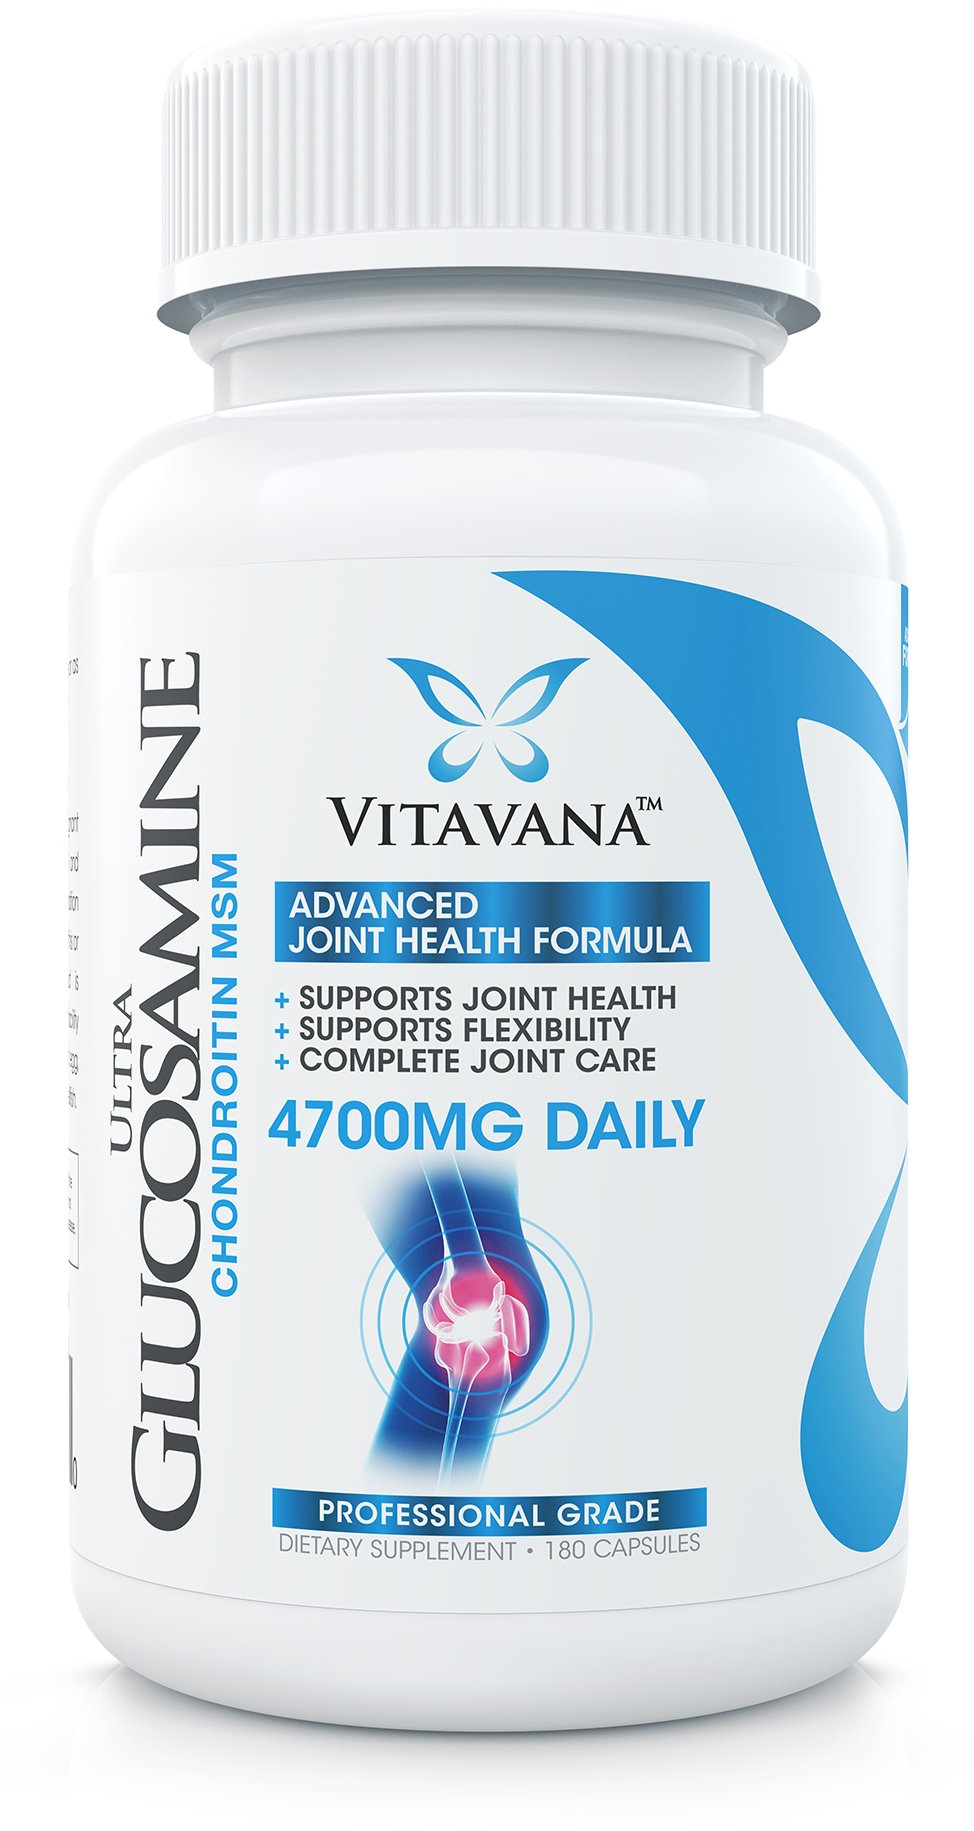 Vitavana Glucosamine Chondroitin MSM :: 4700mg Daily (180 Capsules) :: Advanced Joint Supplement Supports Flexibility and Healthy Joints :: Complete Joint Care Formula (6-Bottles)